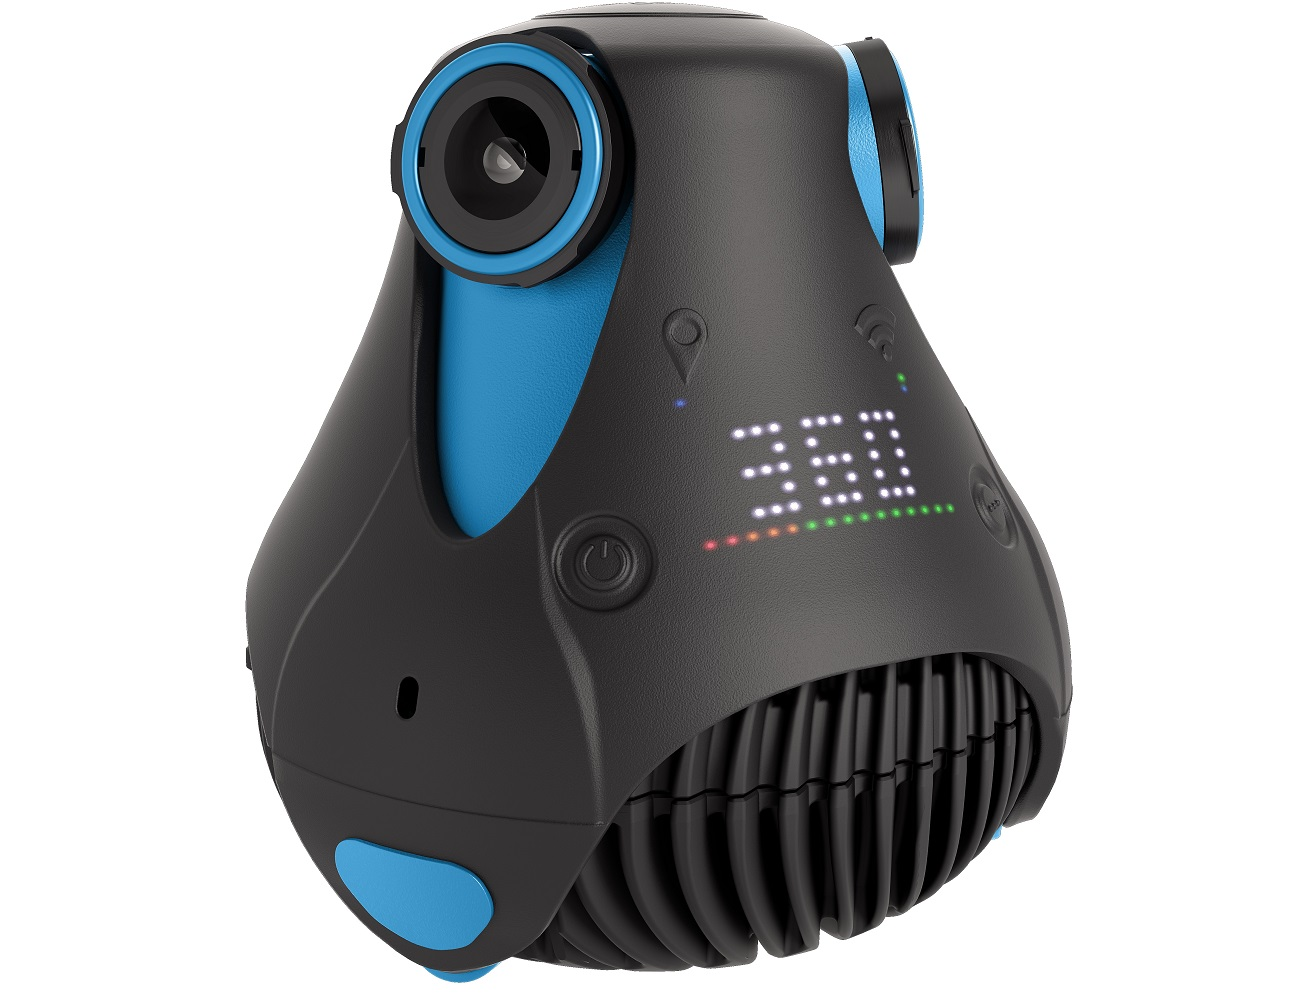 The World's First Full HD 360° Camera